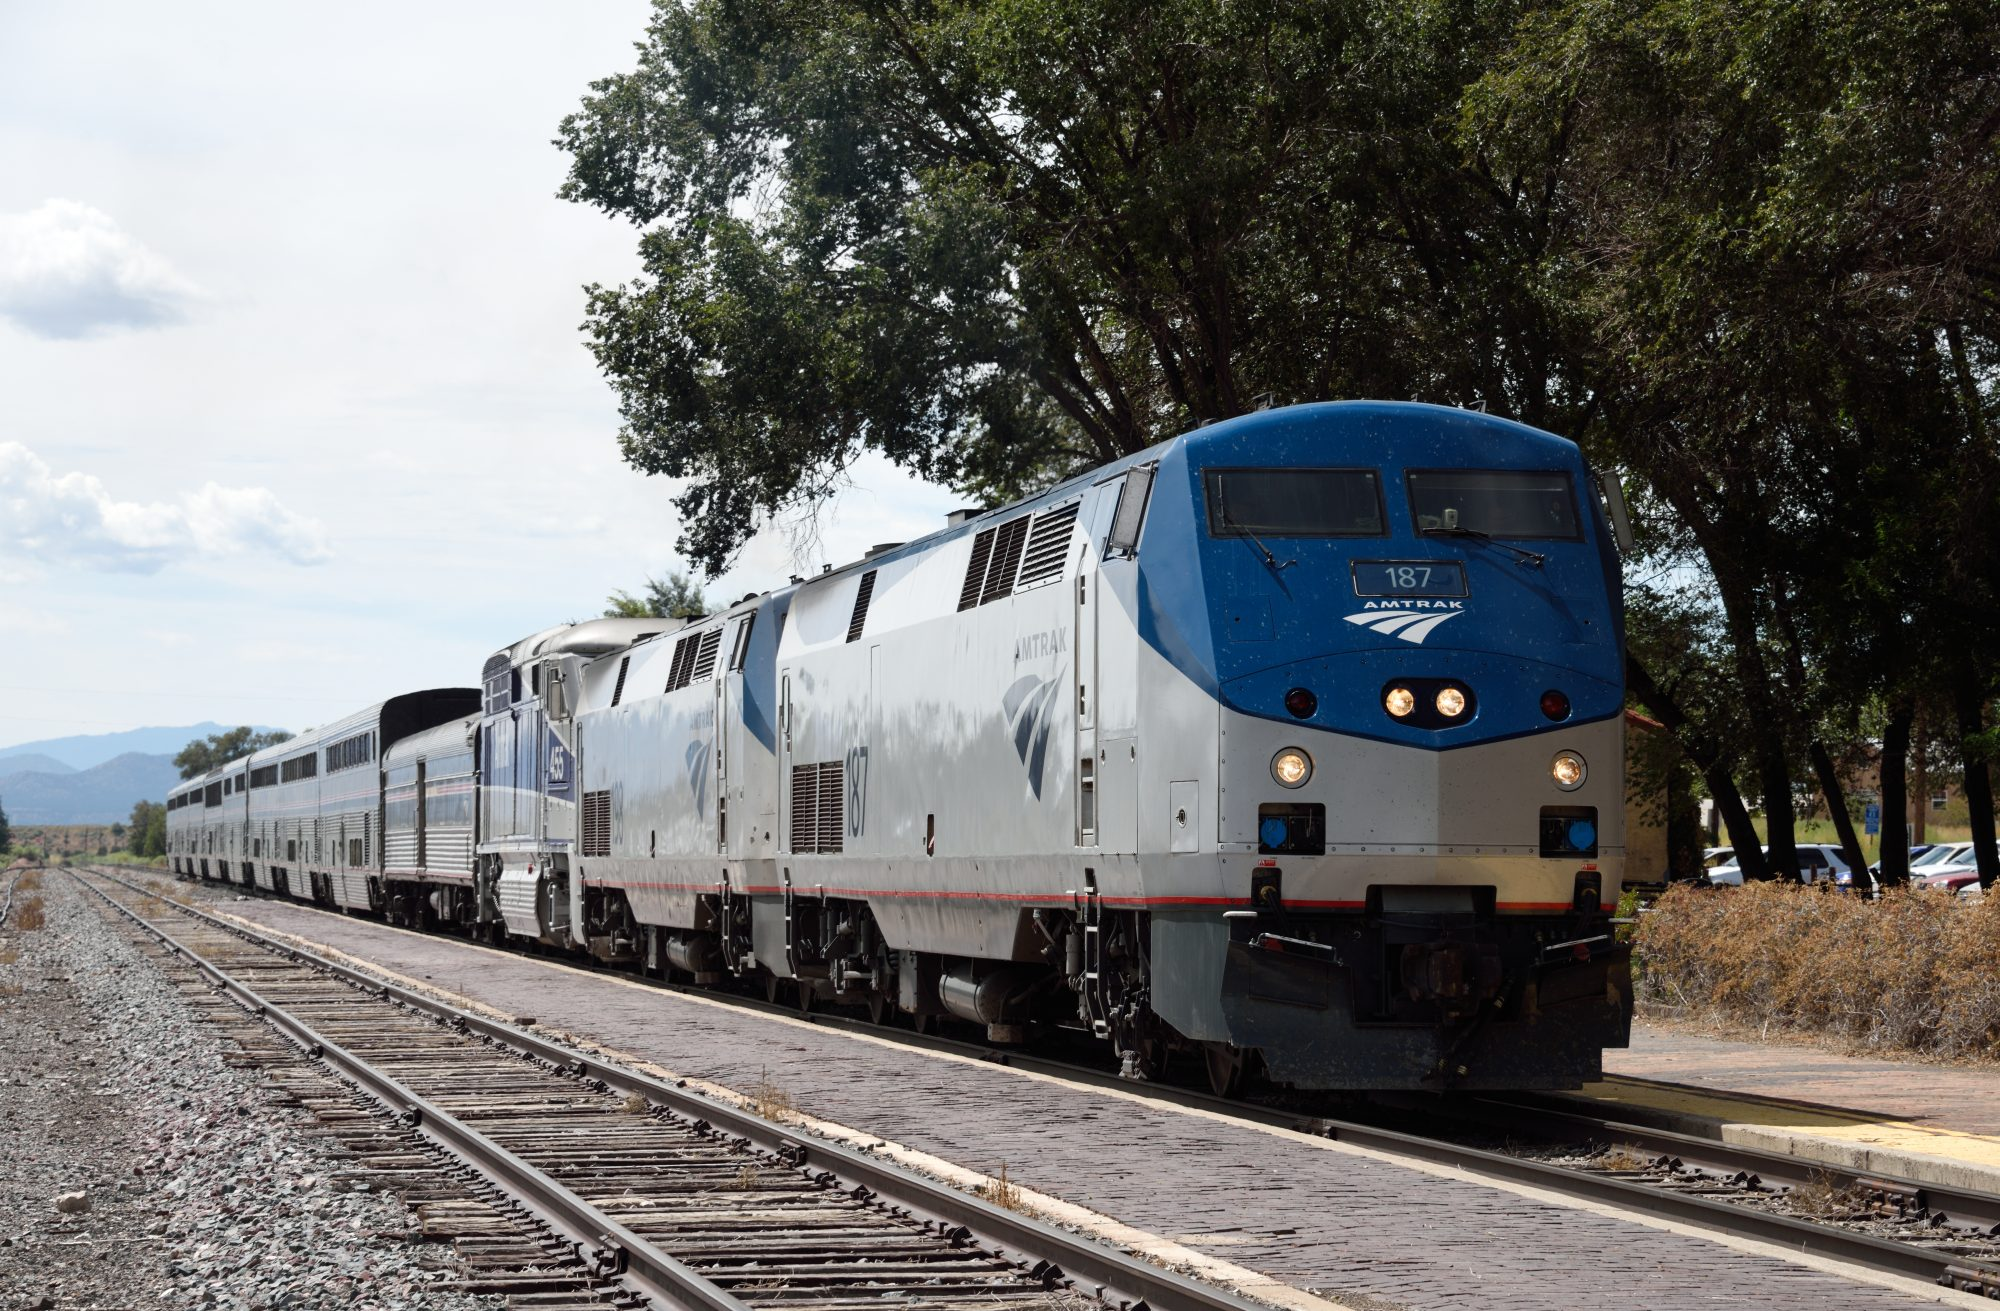 Amtrak Train and Background Views